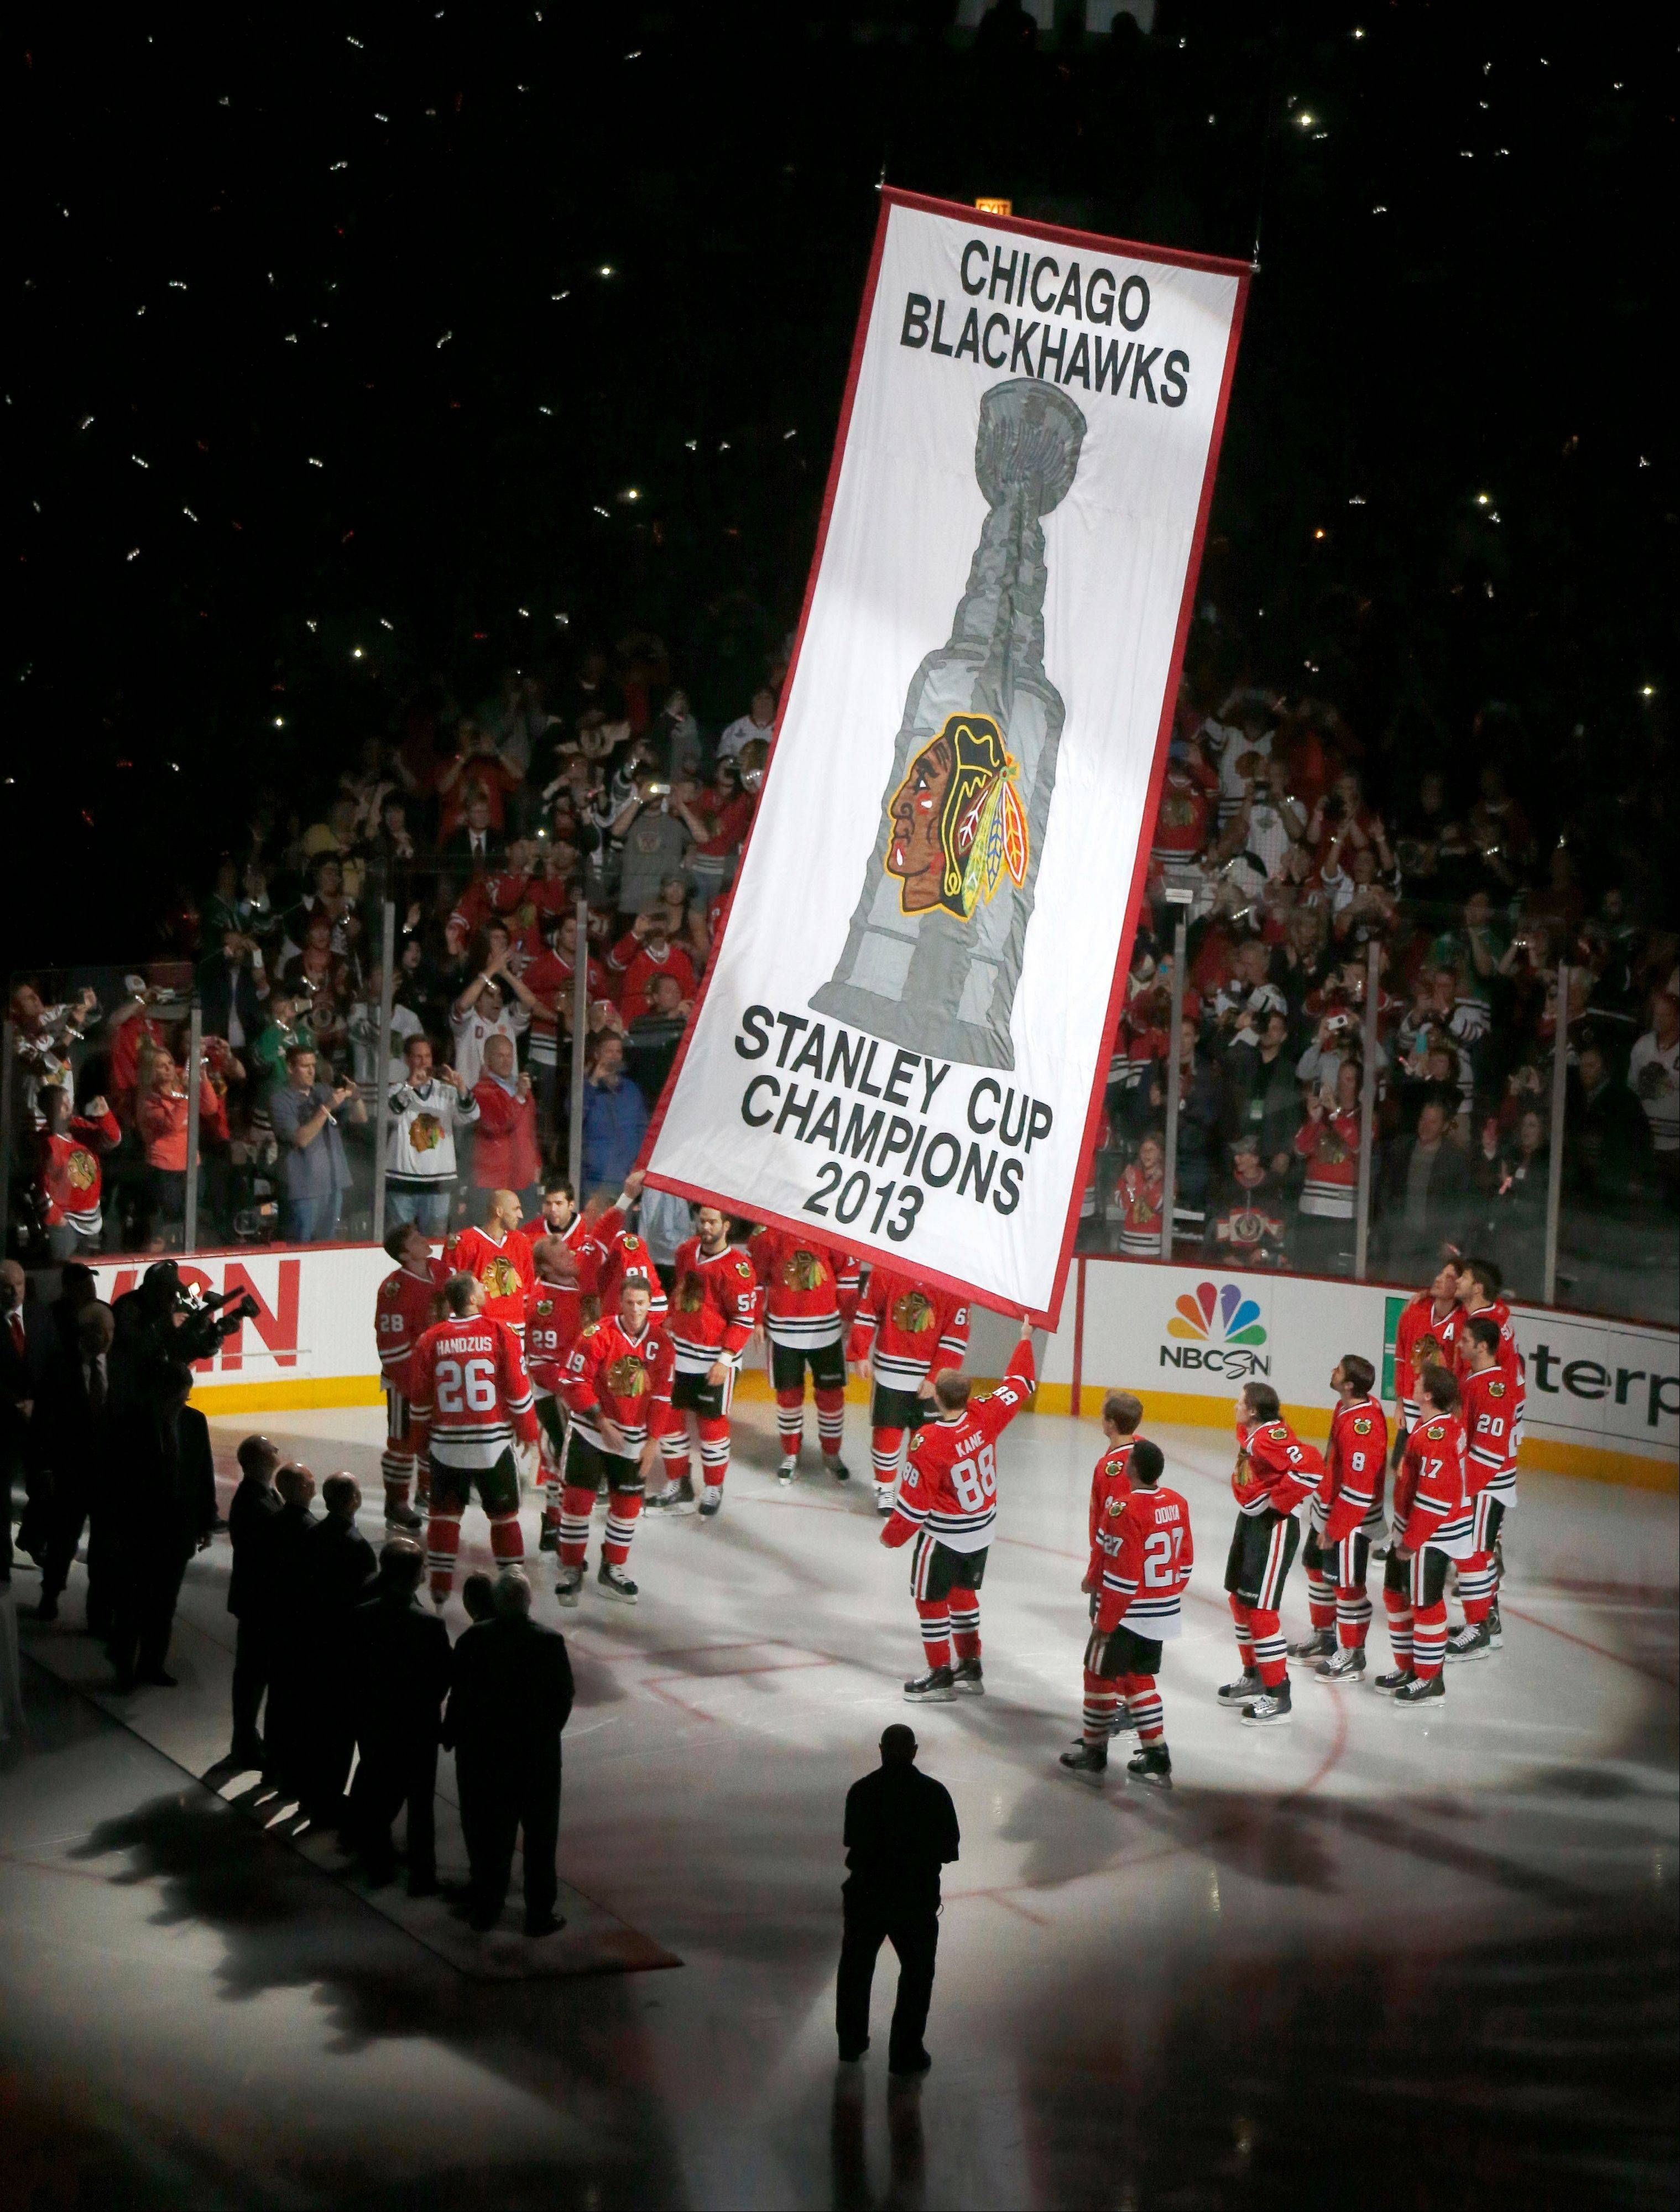 The Blackhawks watch as the Stanley Cup Championship banner is lifted to the rafters during ceremonies before an NHL hockey game between the Blackhawks and the Washington Capitals Tuesday, Oct. 1, 2013, in Chicago.